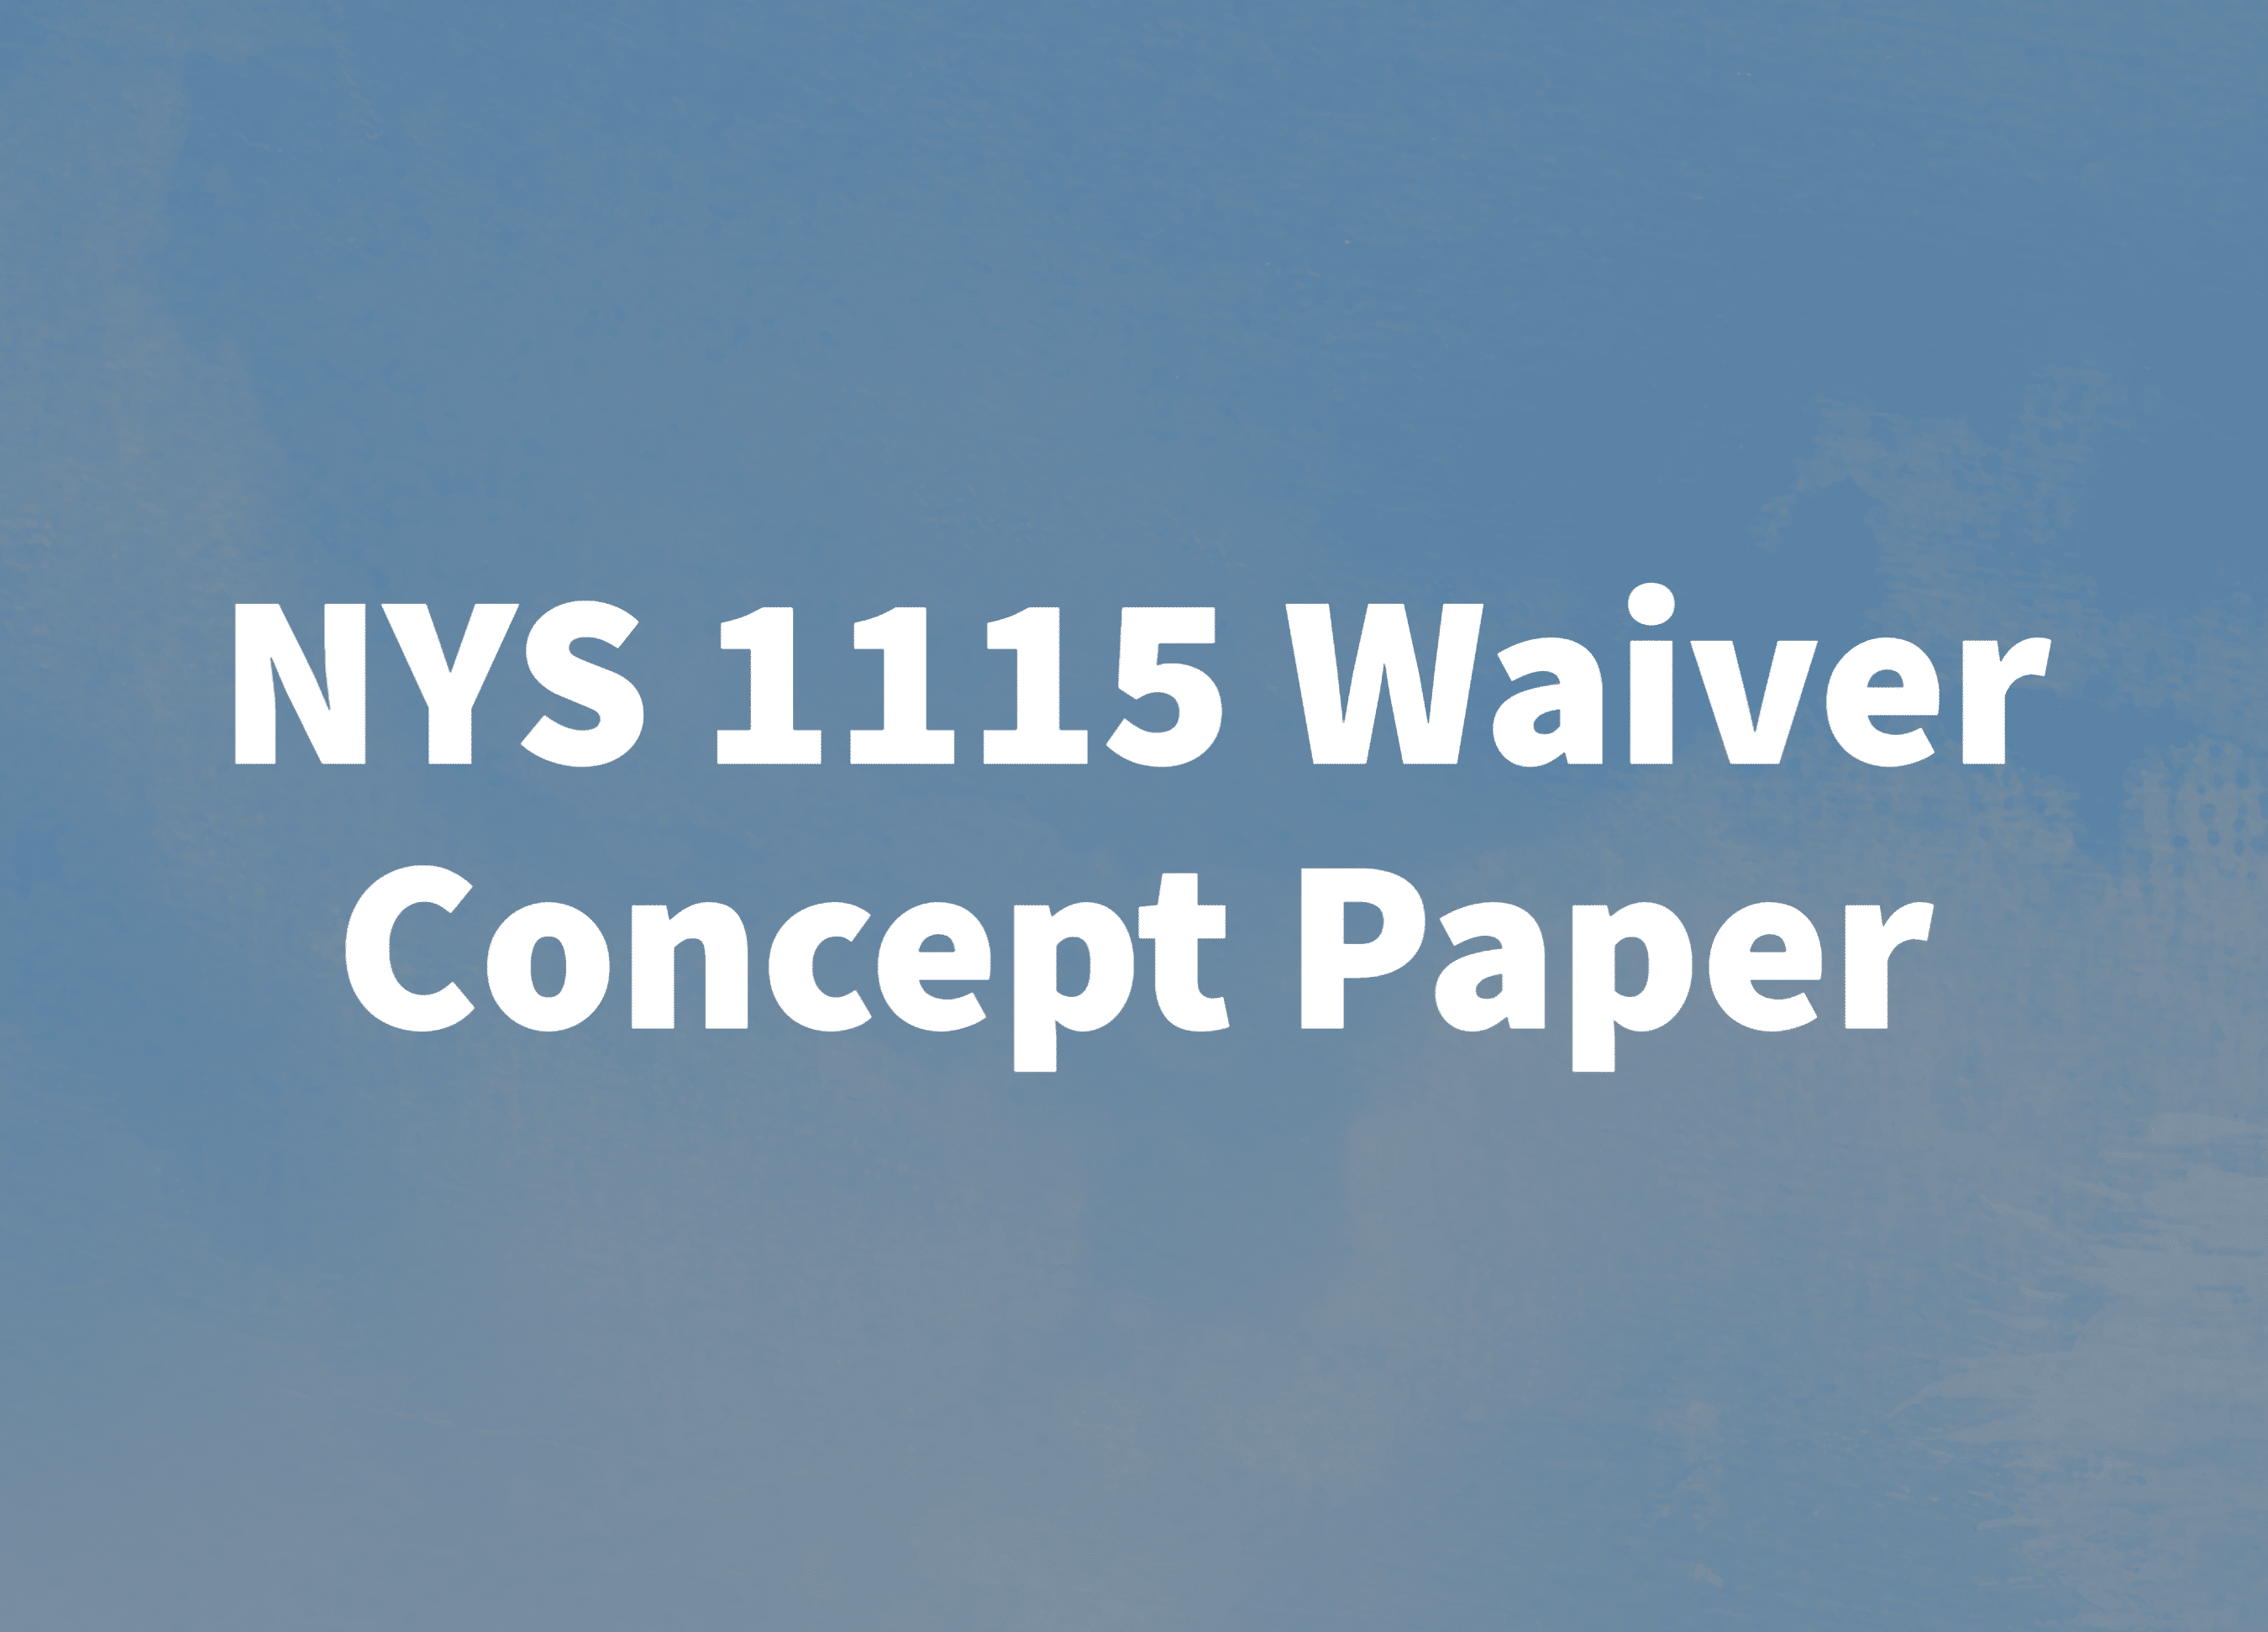 NYS 1115 Waiver Concept Paper: The Highlights